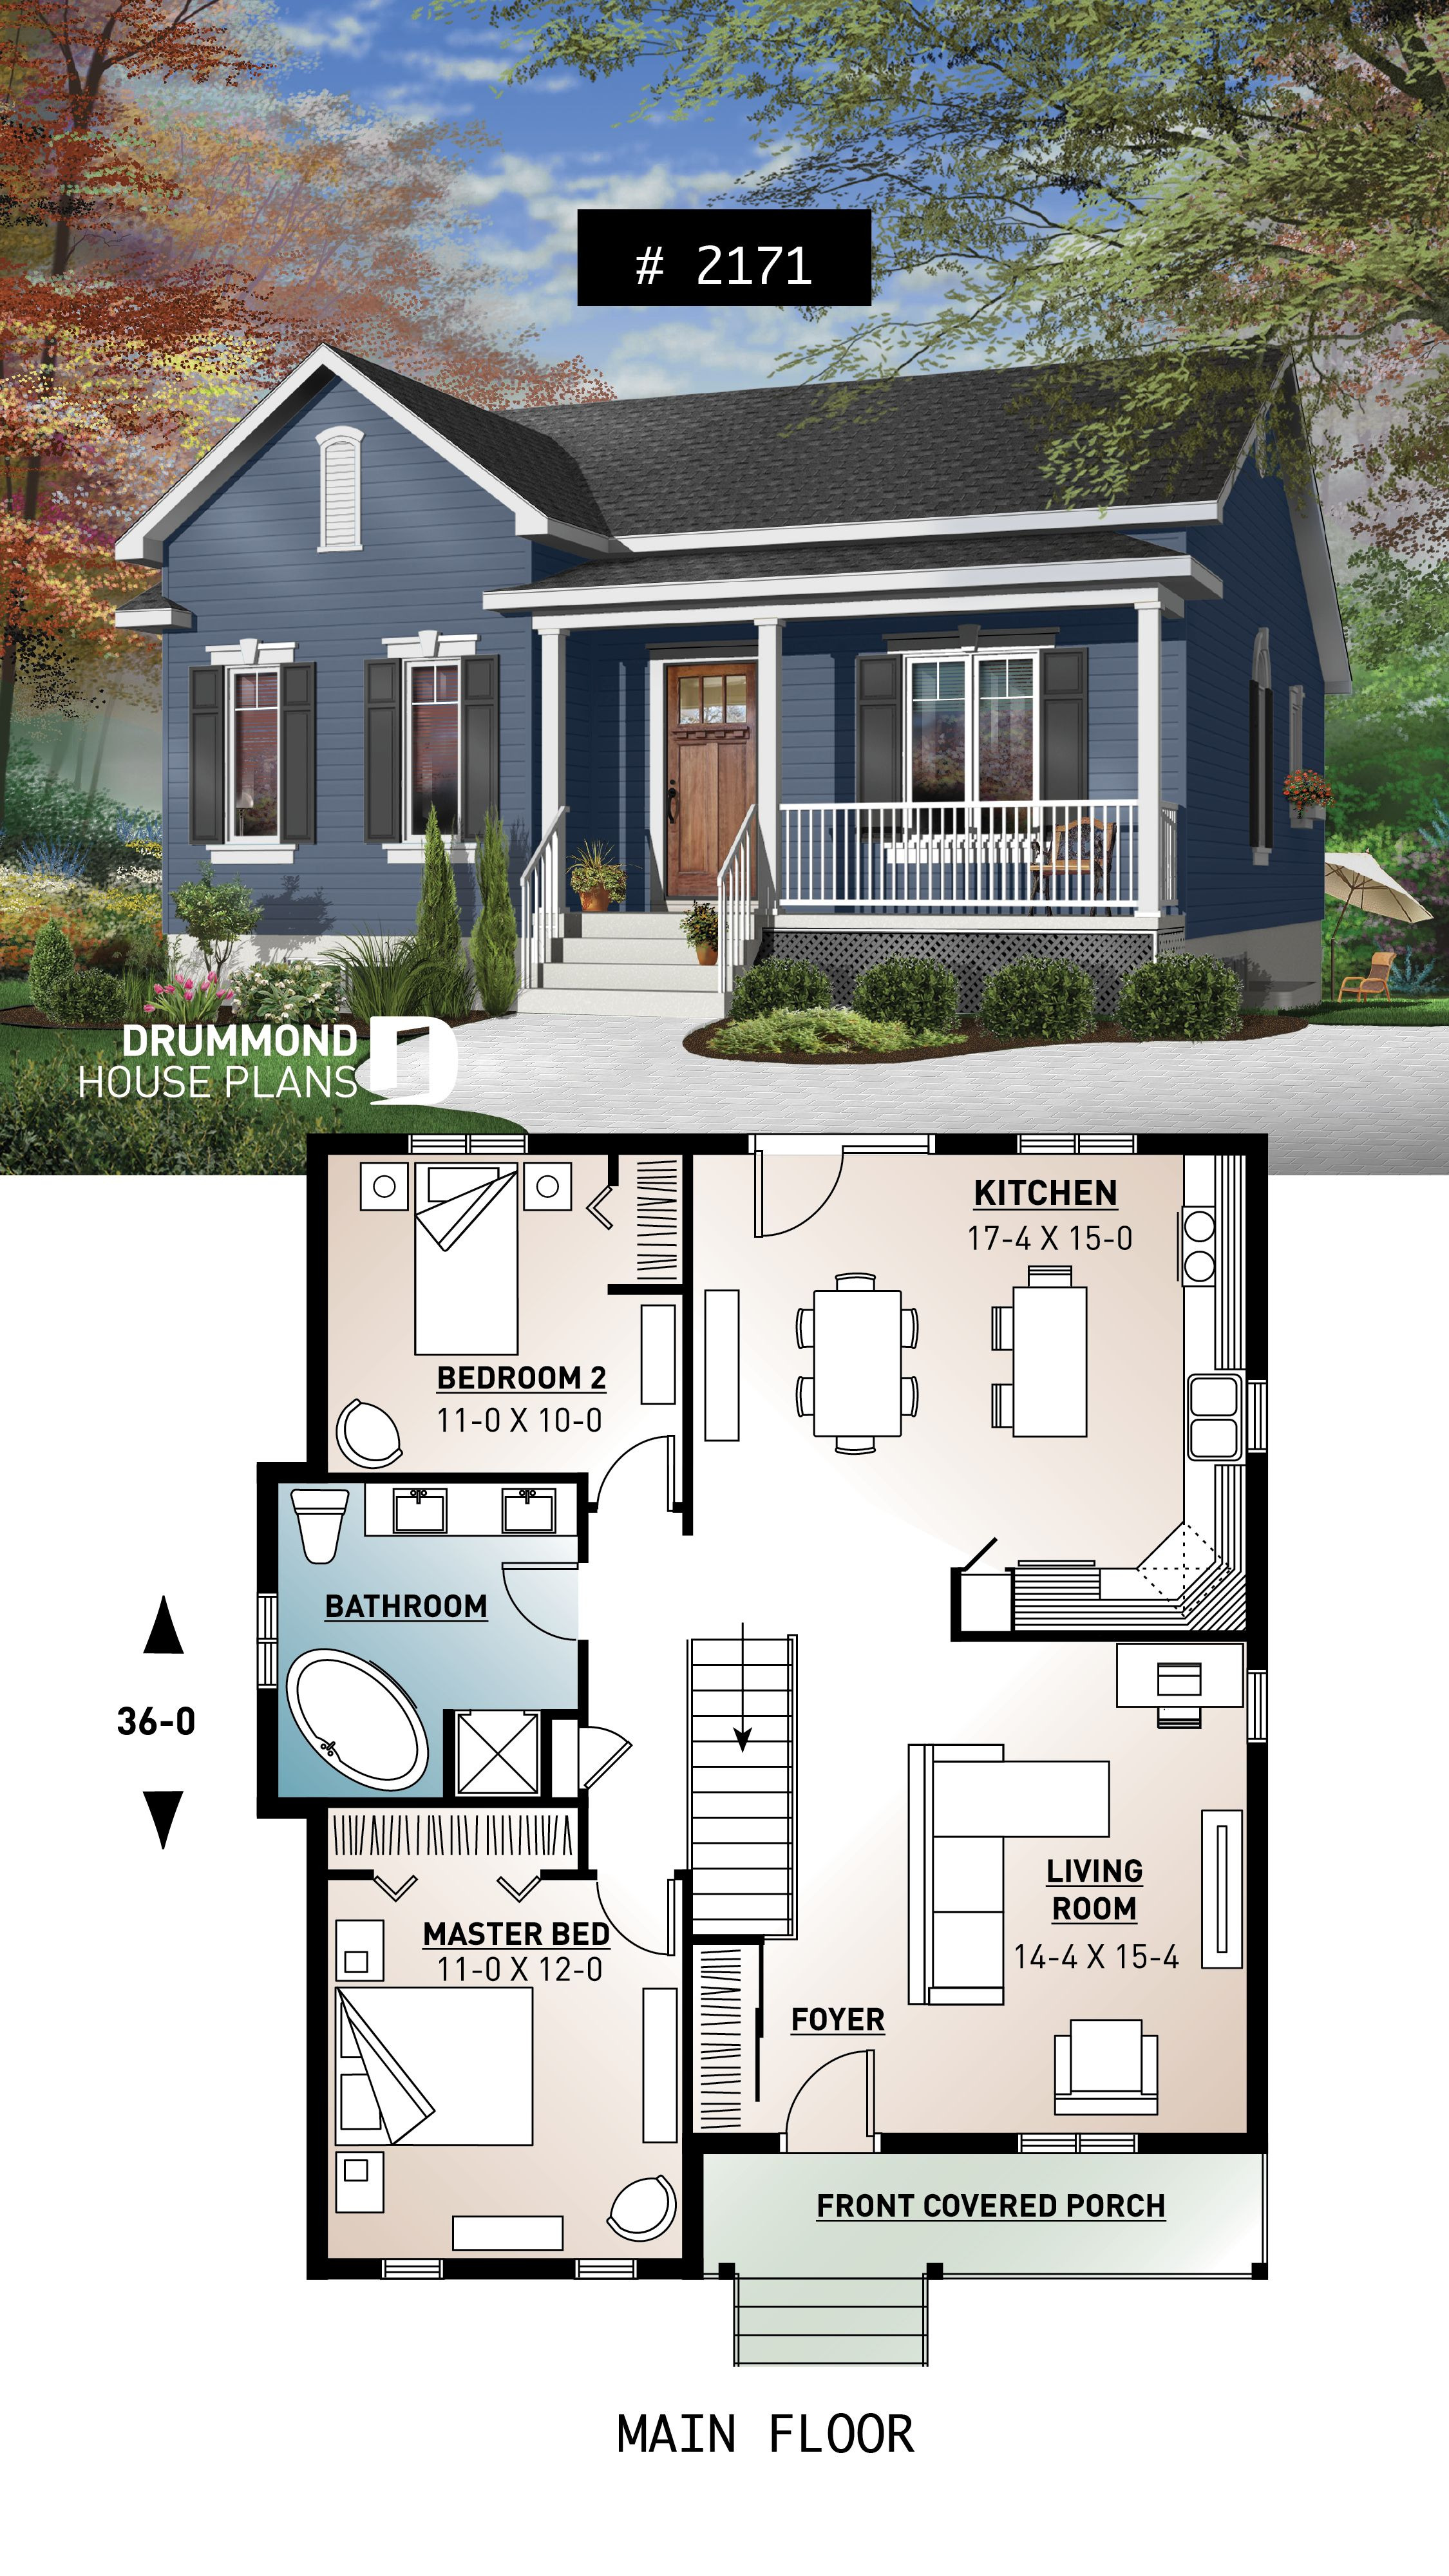 Small Low Cost House Plans Awesome House Plan Kara No 2171